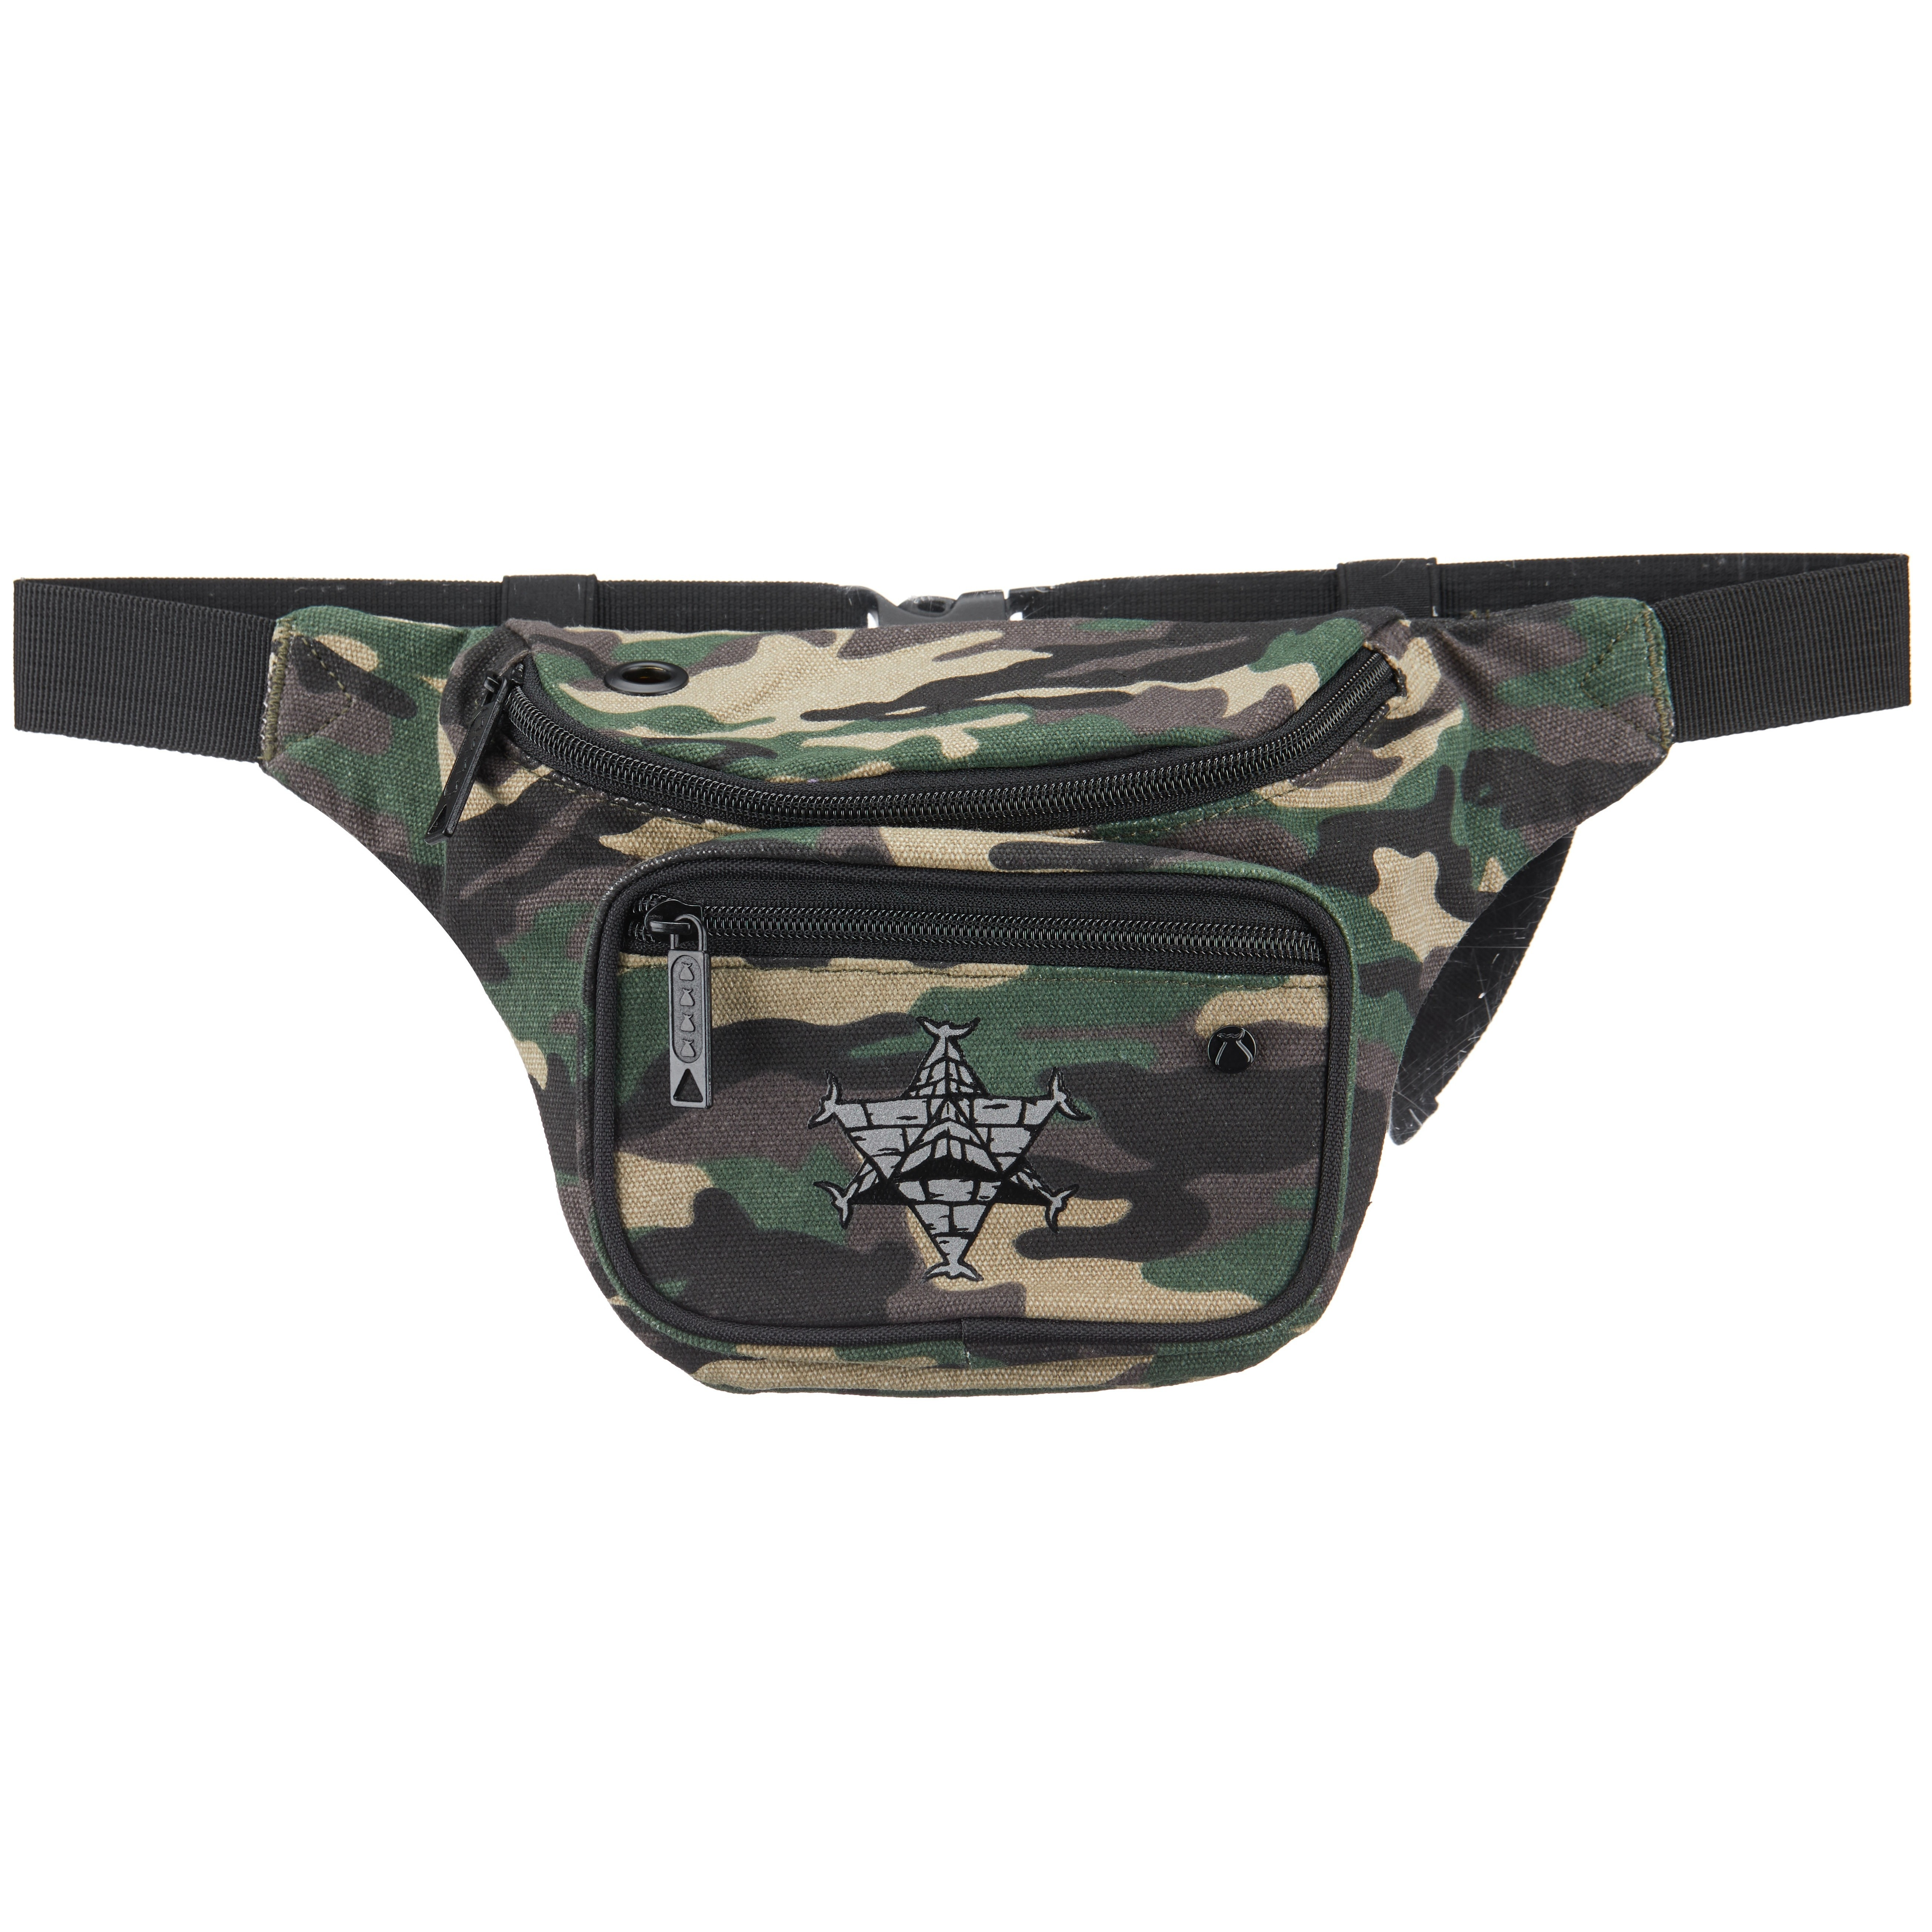 Pyramid Country Deluxe Hip Pack (Camo)